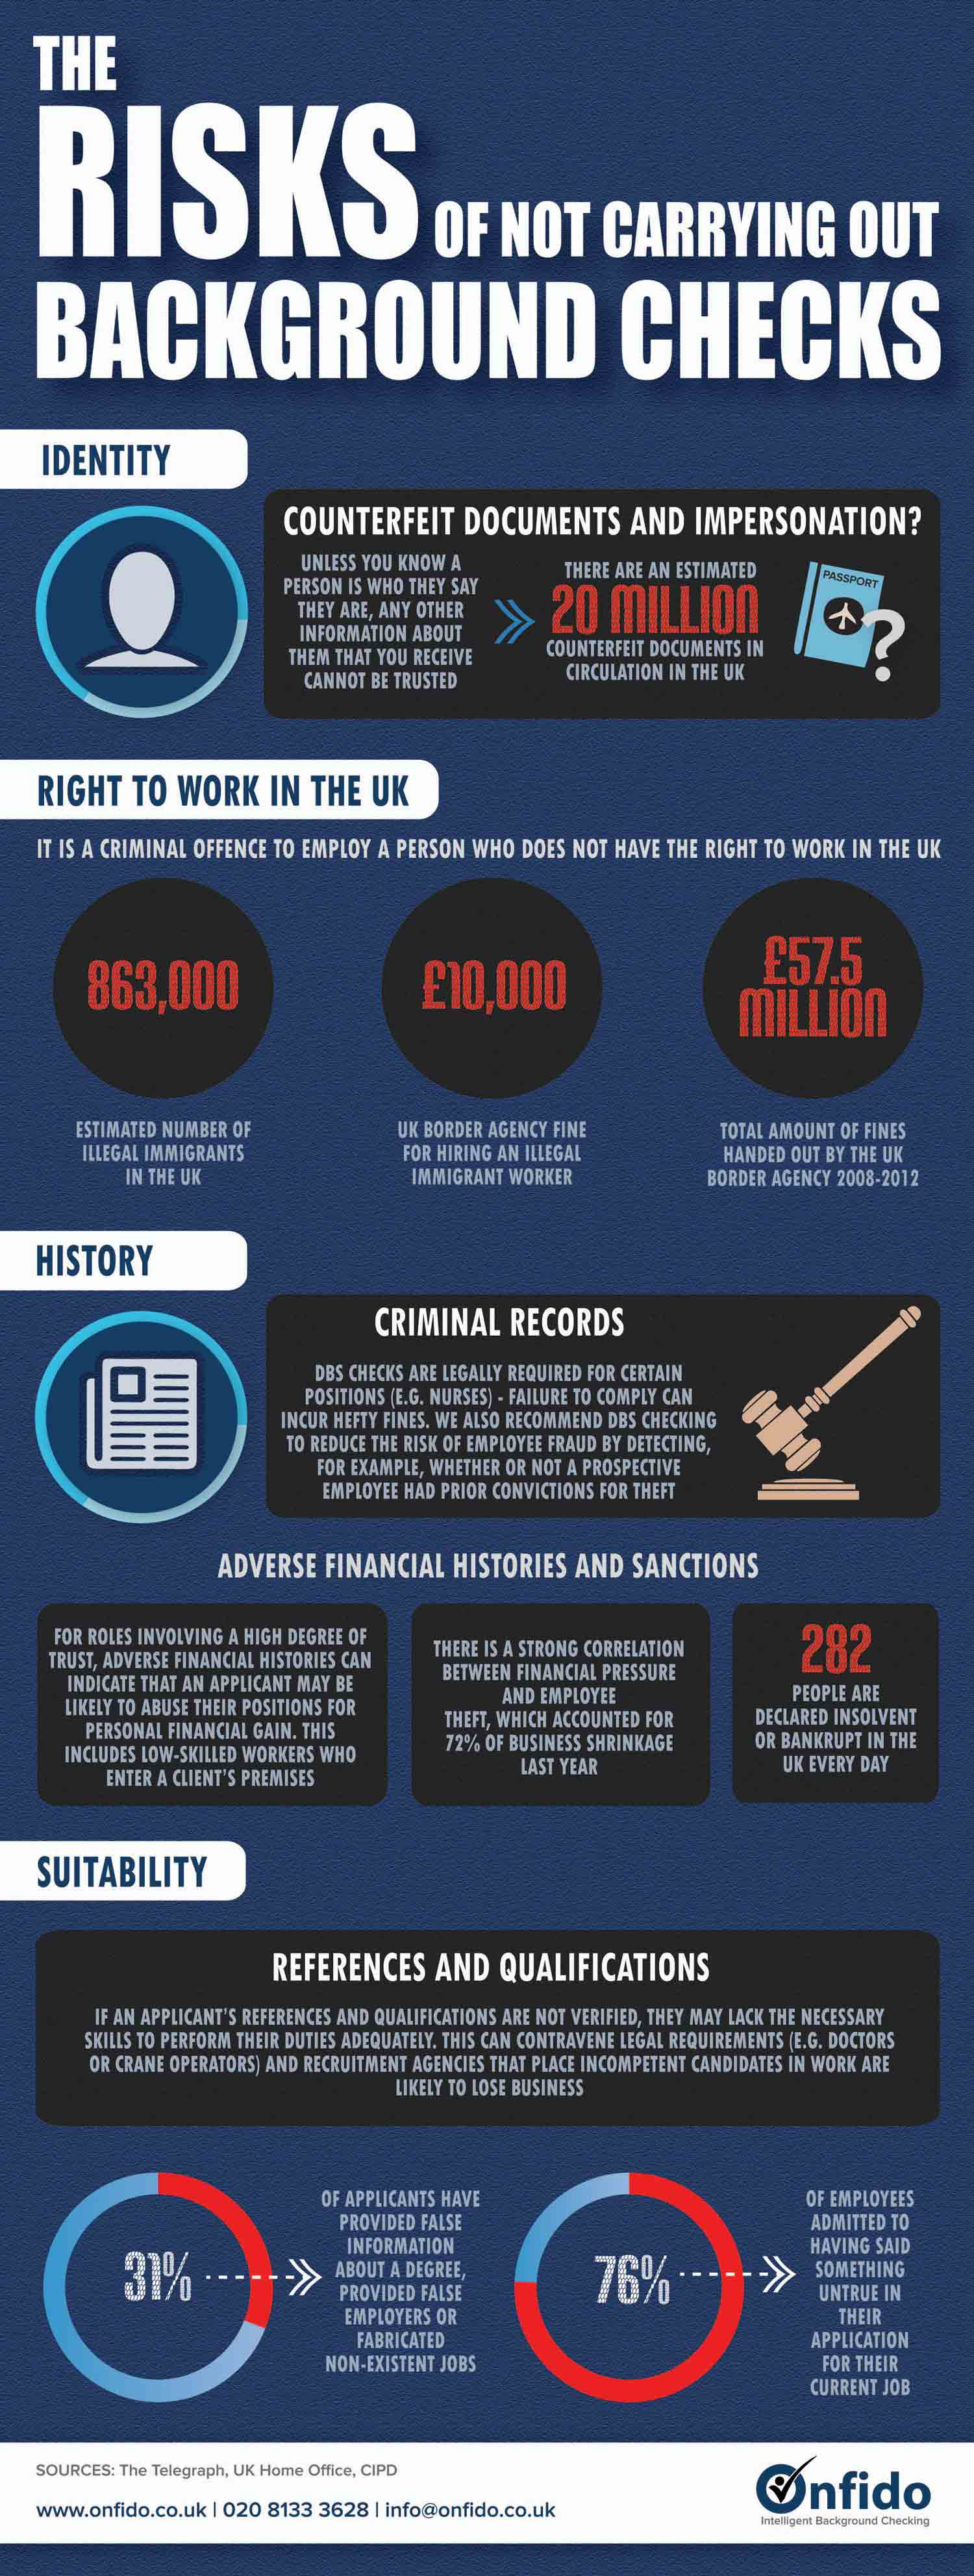 The Risks of Not Carrying out Background Checks Infographic